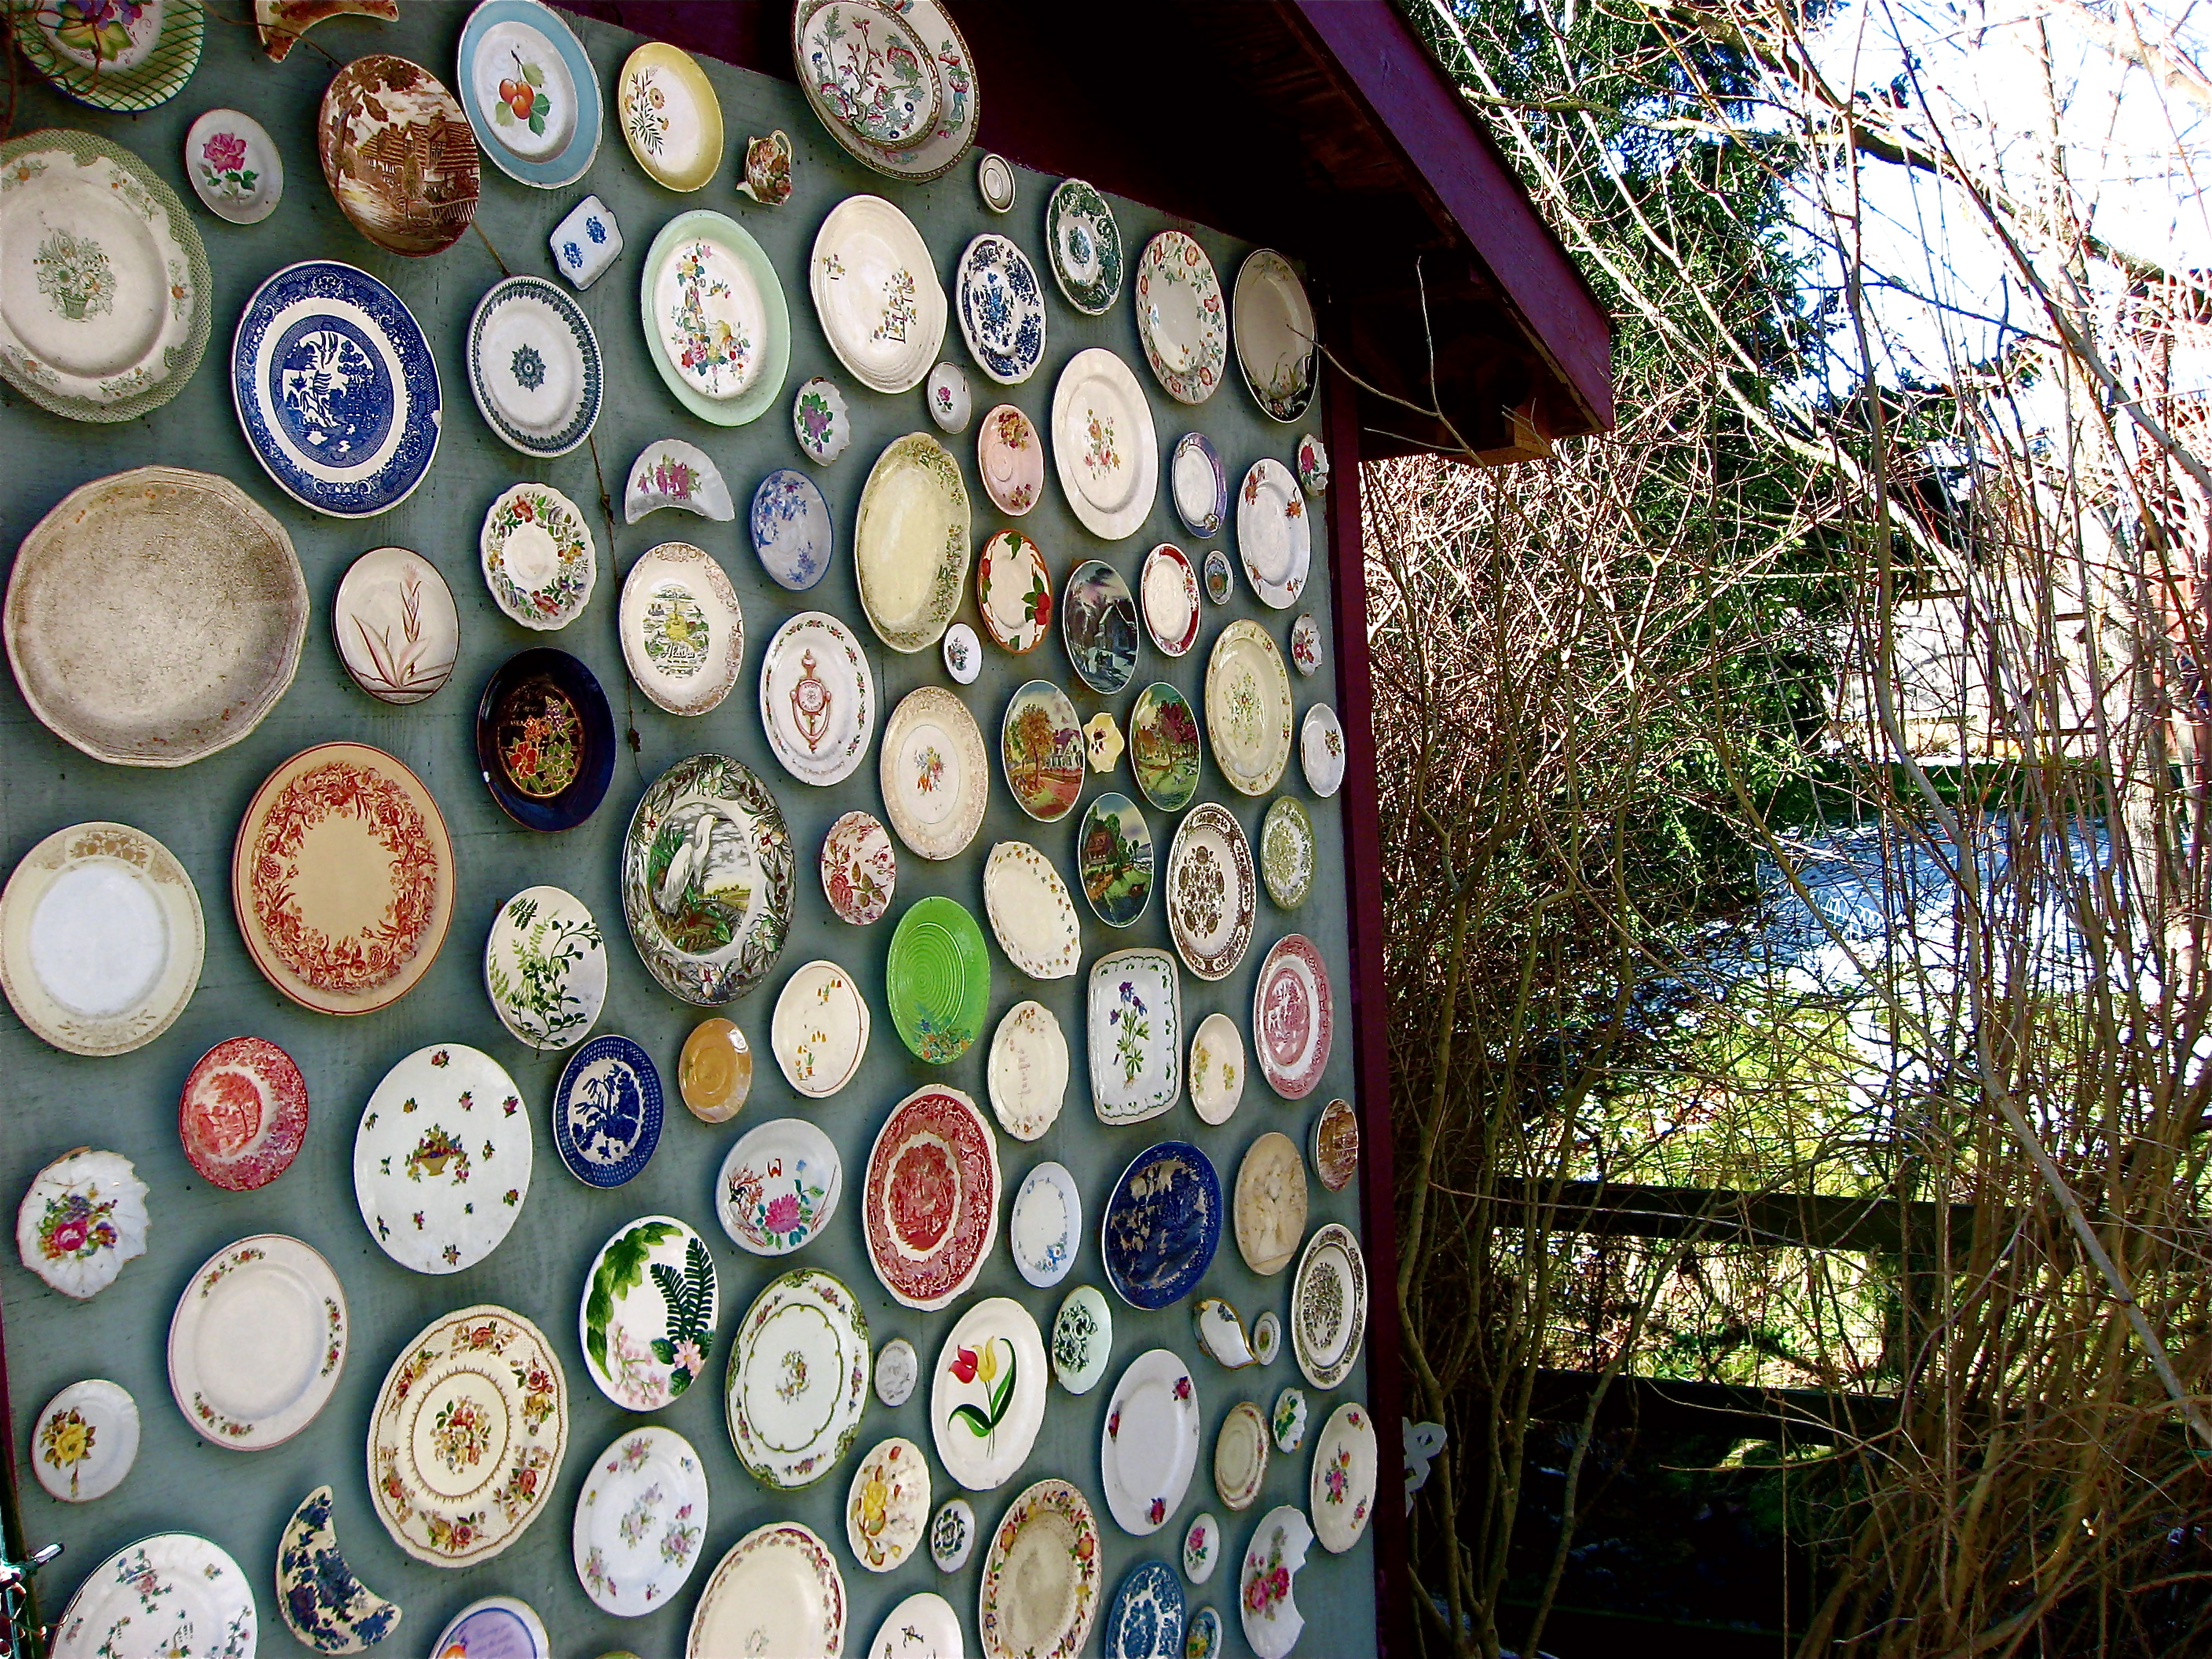 Landscaping ideas using recycled materials pdf for Images of decorative items made from waste material